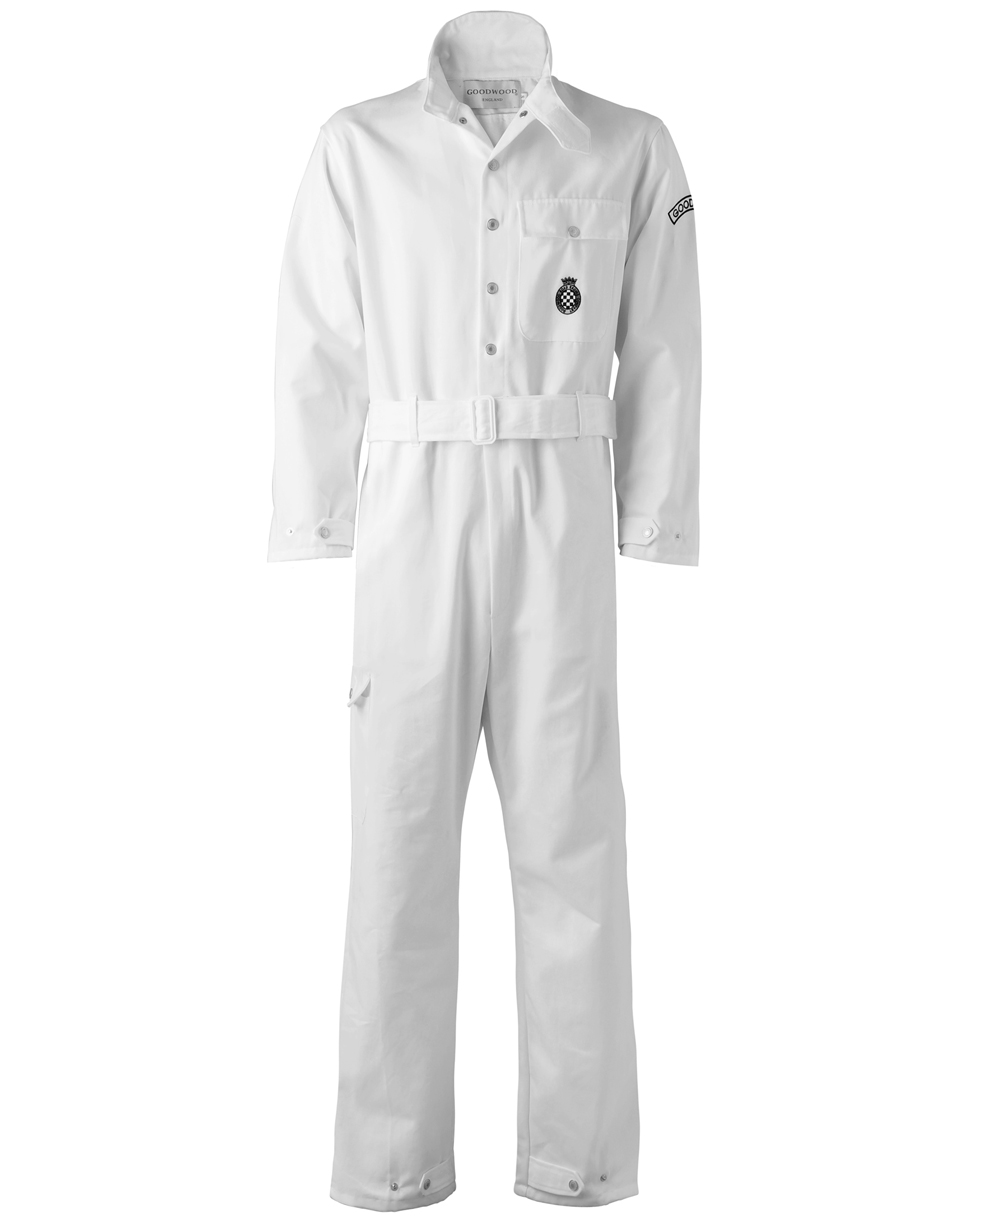 bf7b85f01008 Product Title - GRRC Adults Overalls White